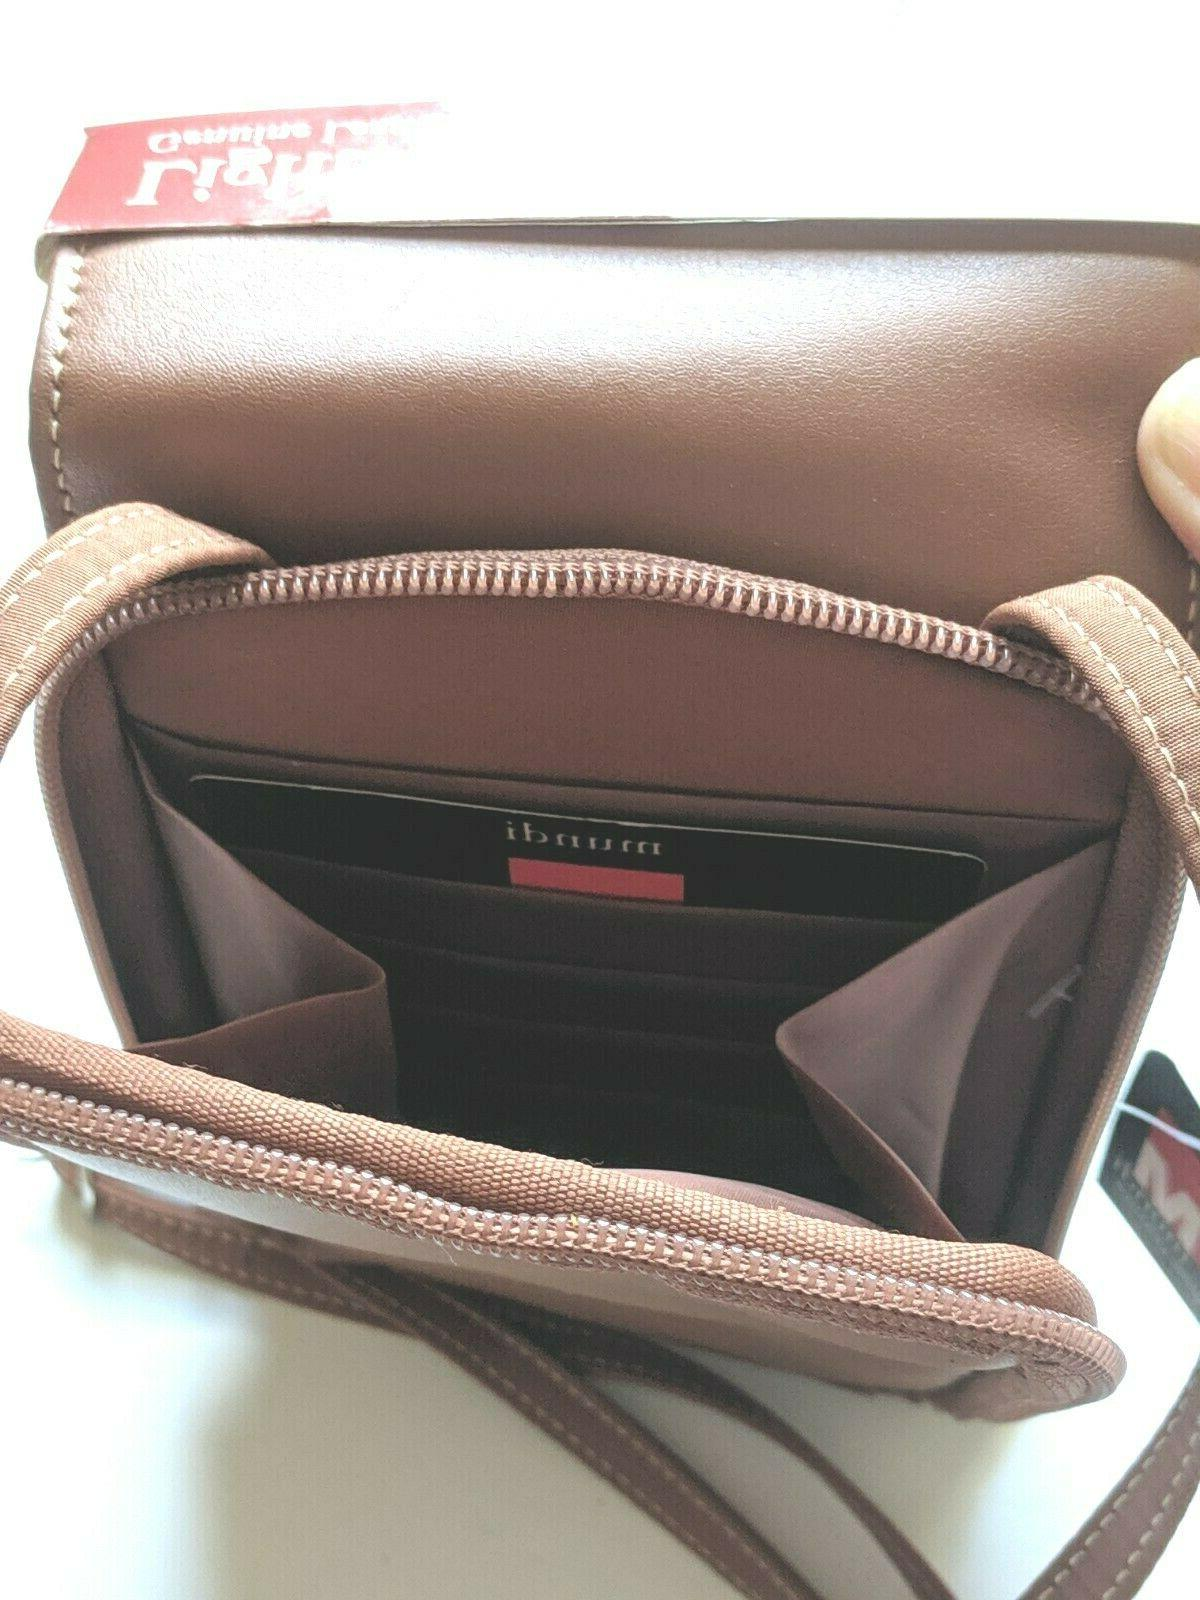 New! Leather Up Brown Bag Crossbody